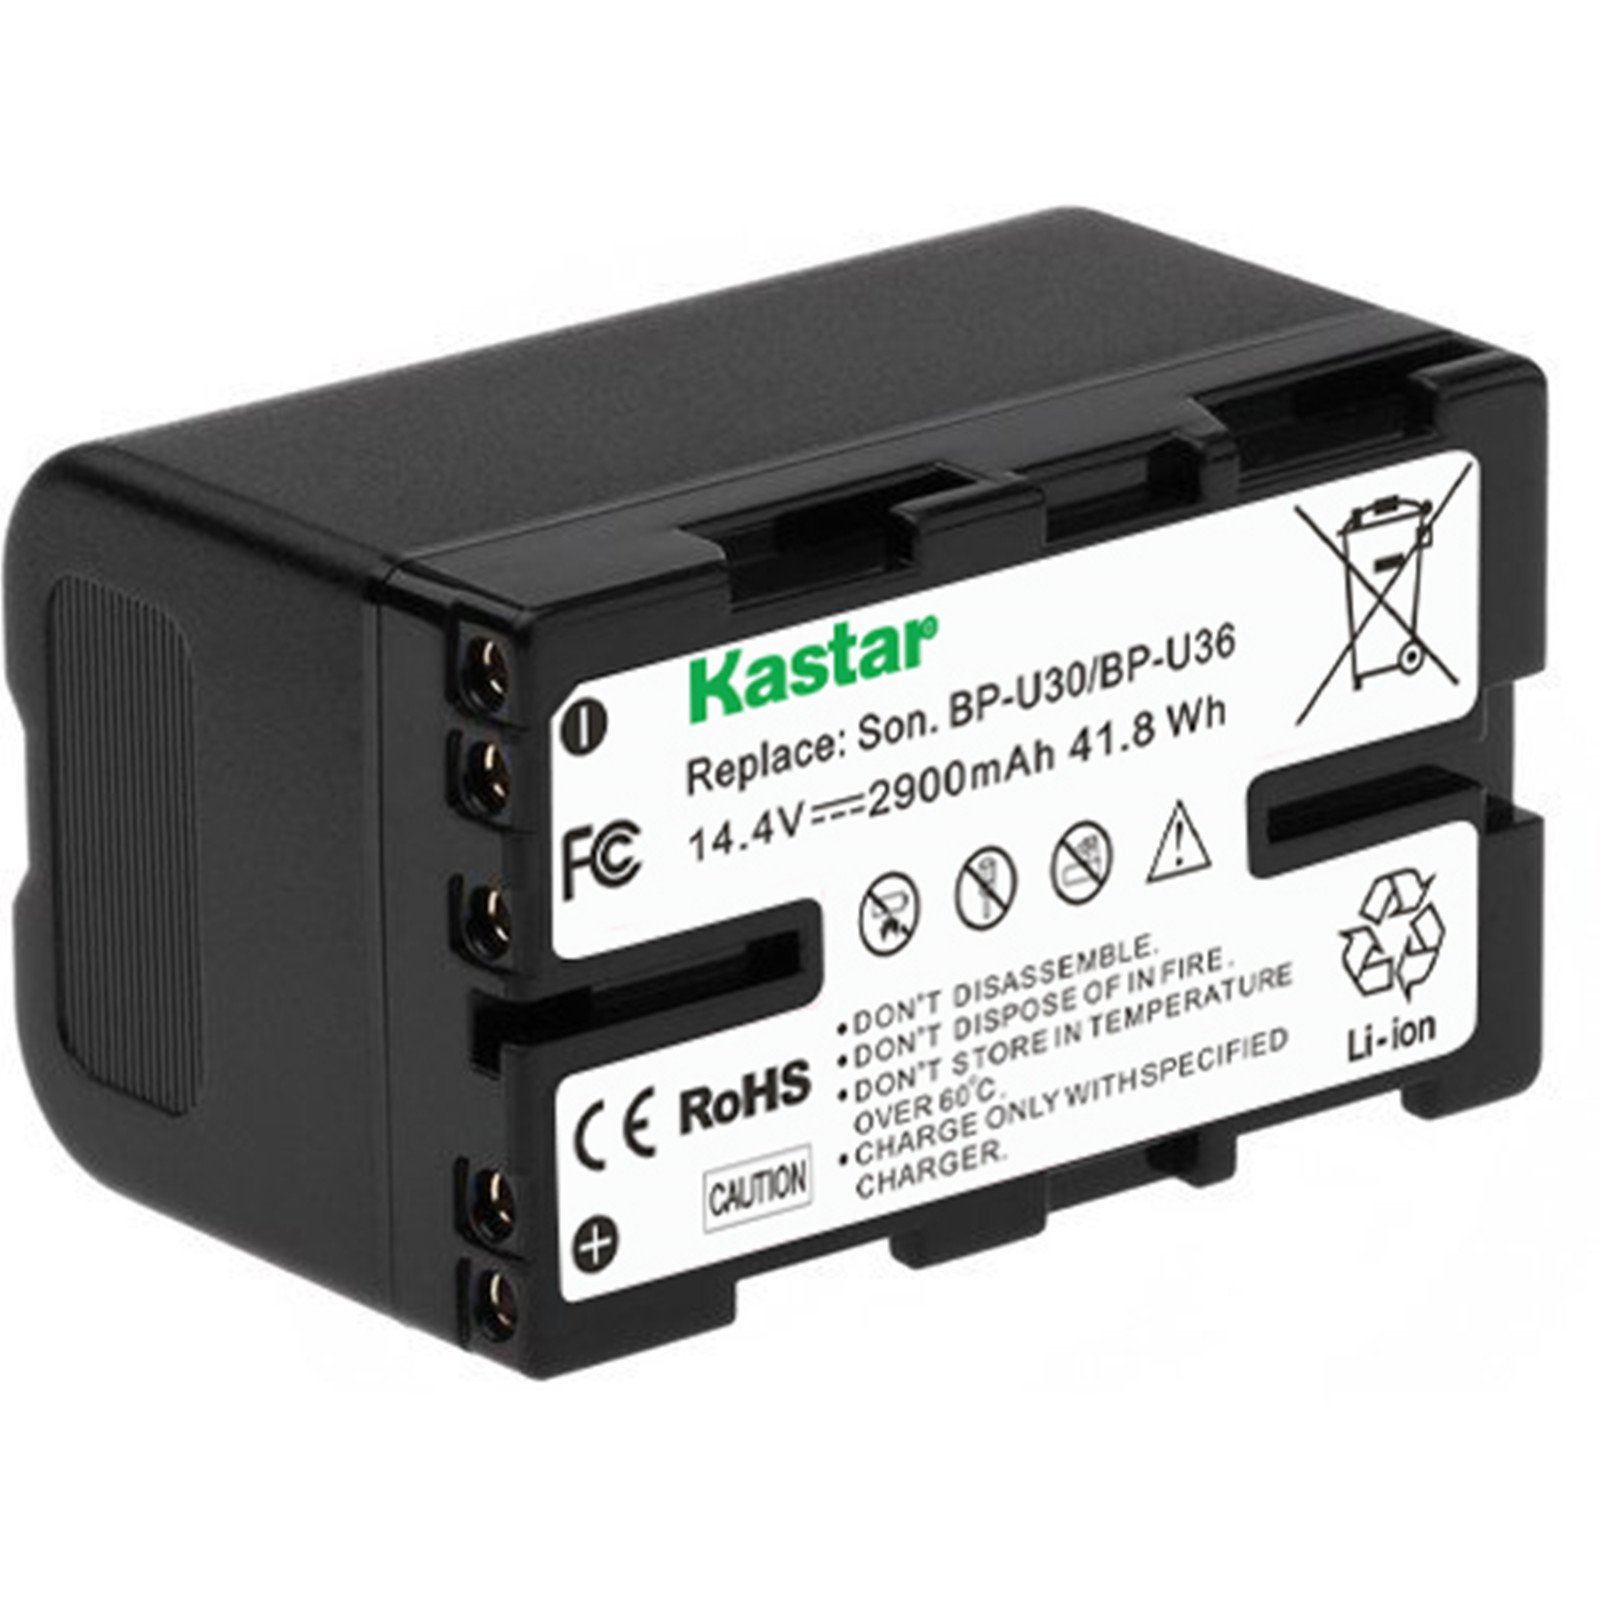 Replacement BP-U60 Battery for Sony PMW-100 PMW-150 PMW-160 PMW-200 PMW-EX1 PMW-EX3 PMW-EX160 PMW-EX260 PMW-EX280 PMW-F3 Camcorder More!!